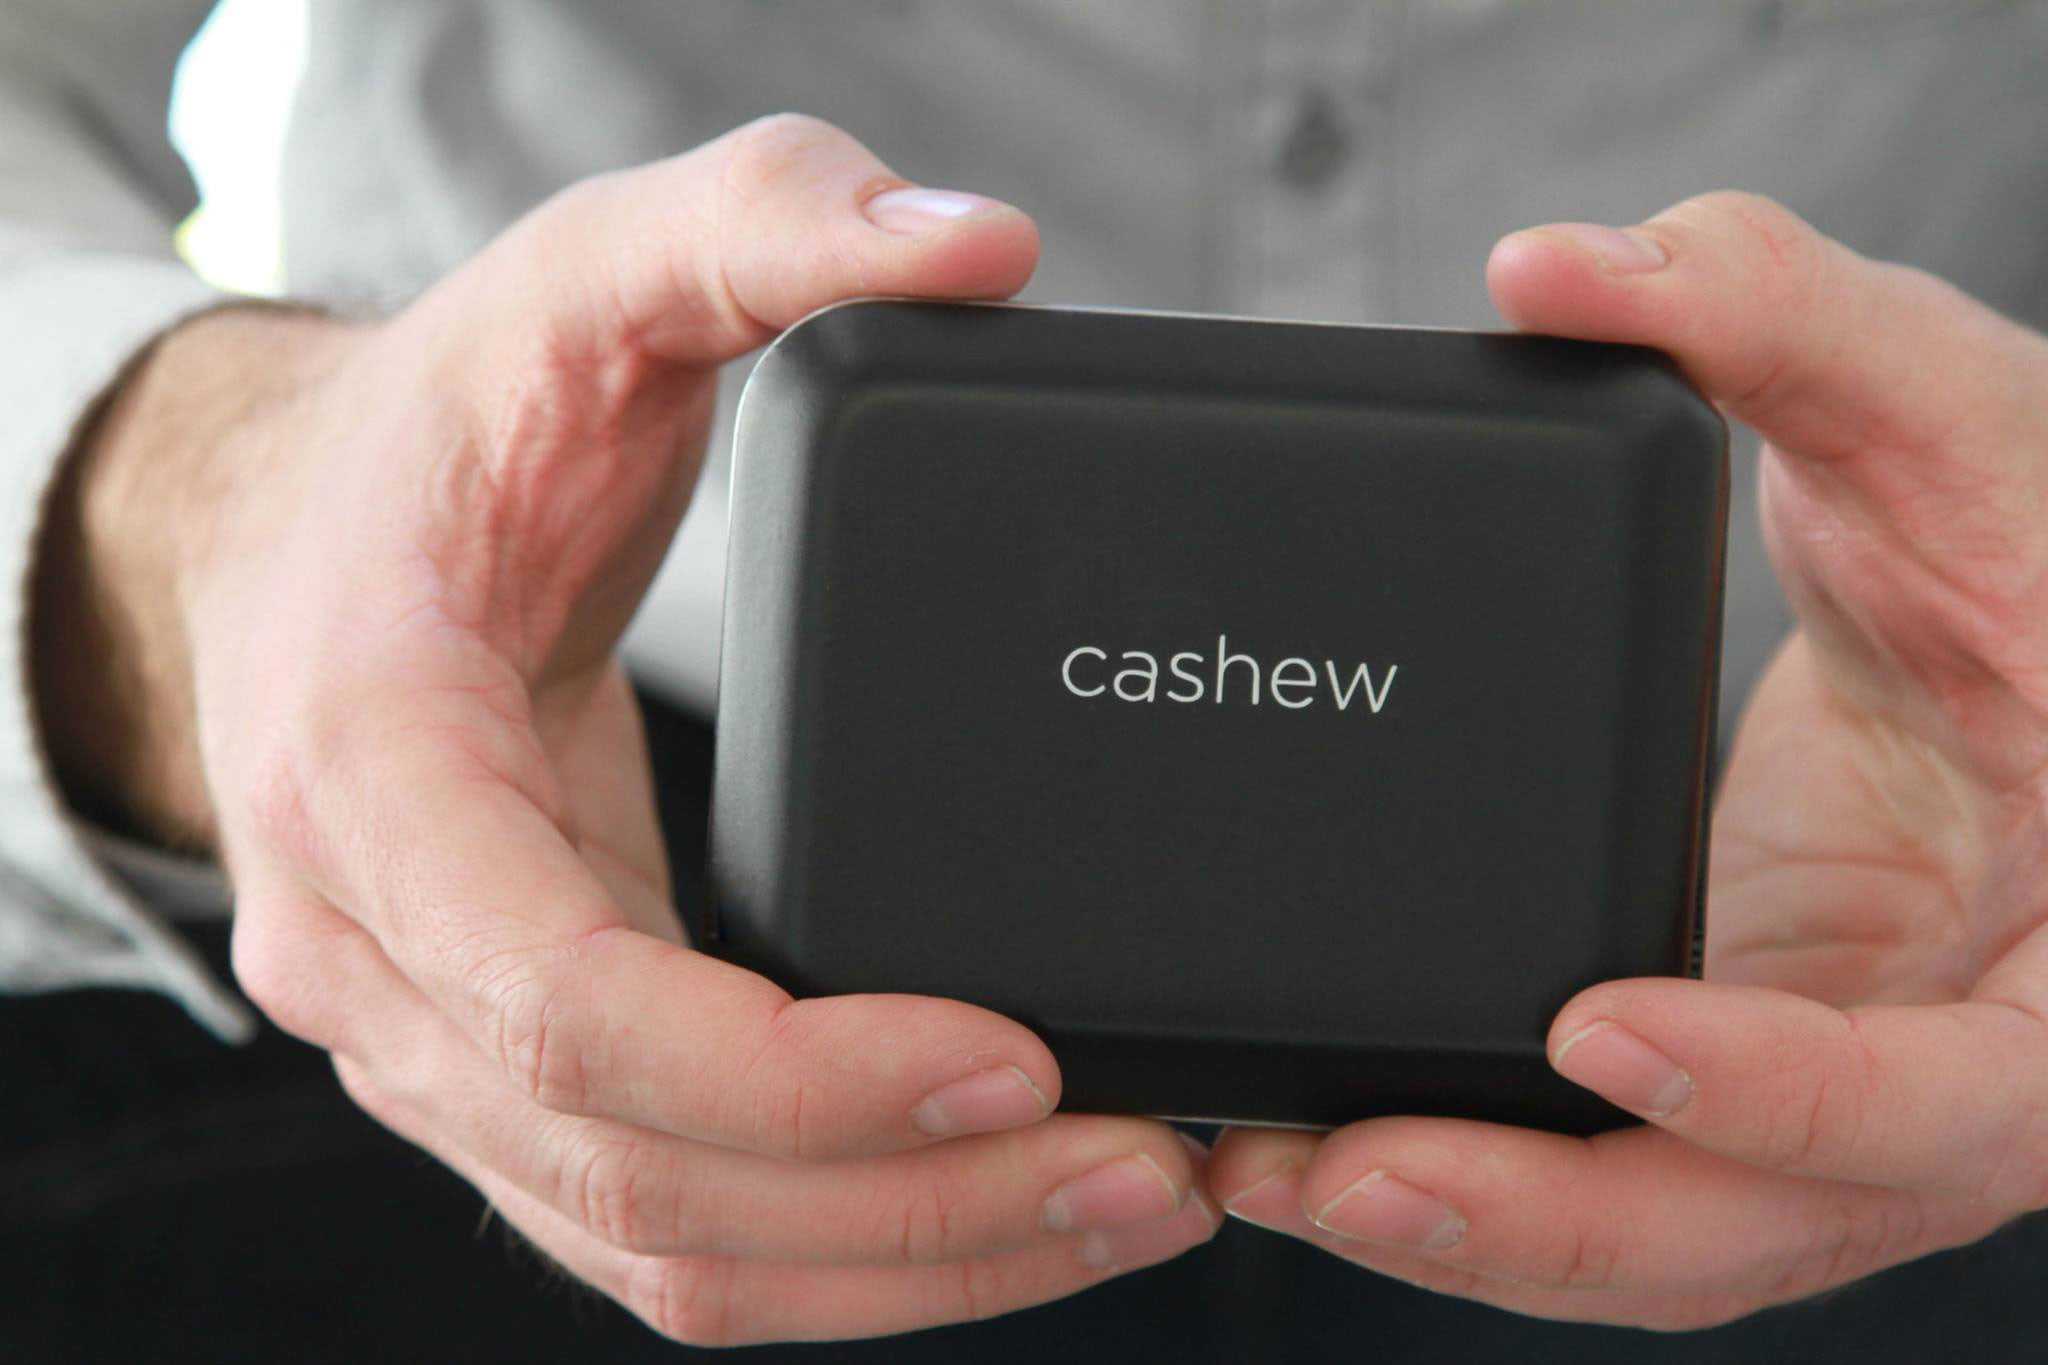 awesome tech you cant buy yet trainerbot 101hero 3dvarius cashew  secure biometric wallet